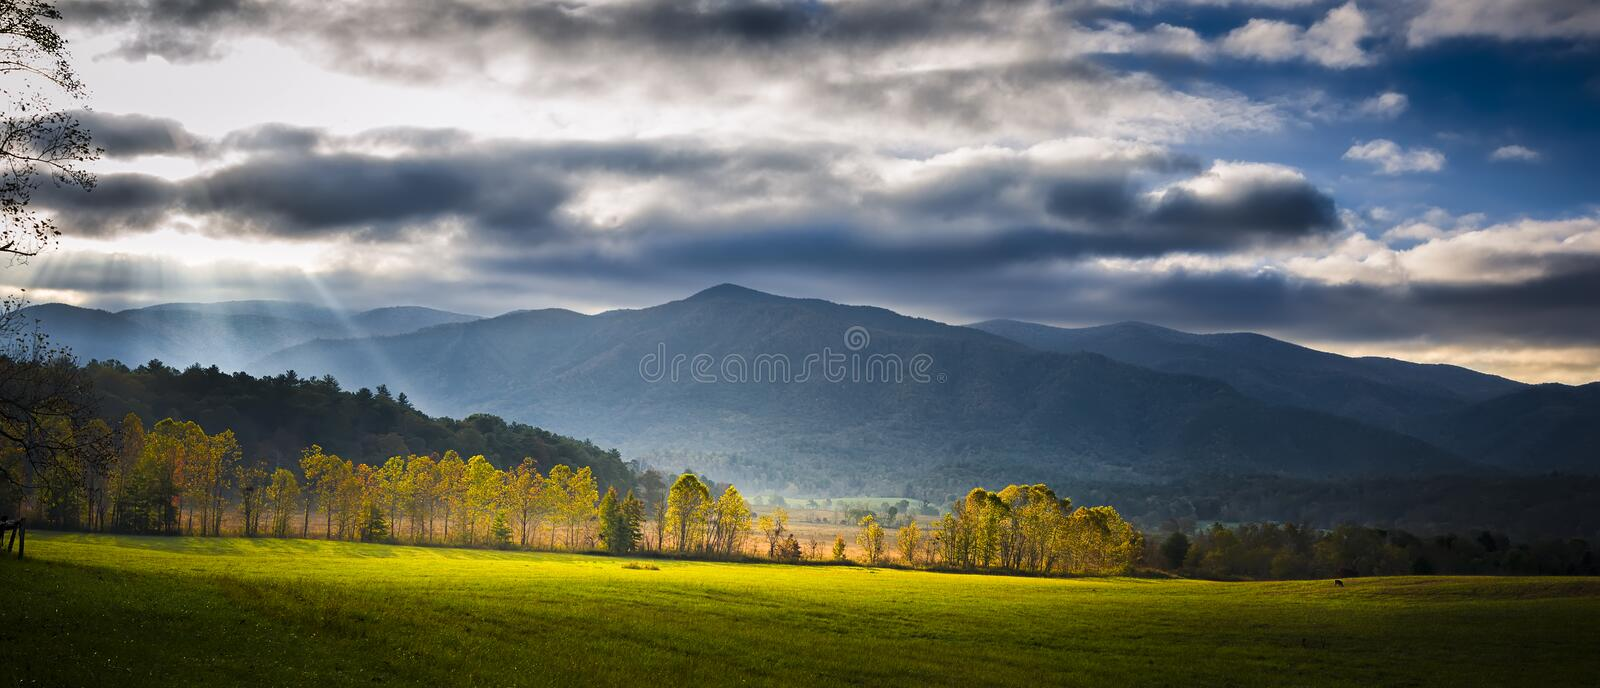 Cade's Cove Morning Panorama royalty free stock photo